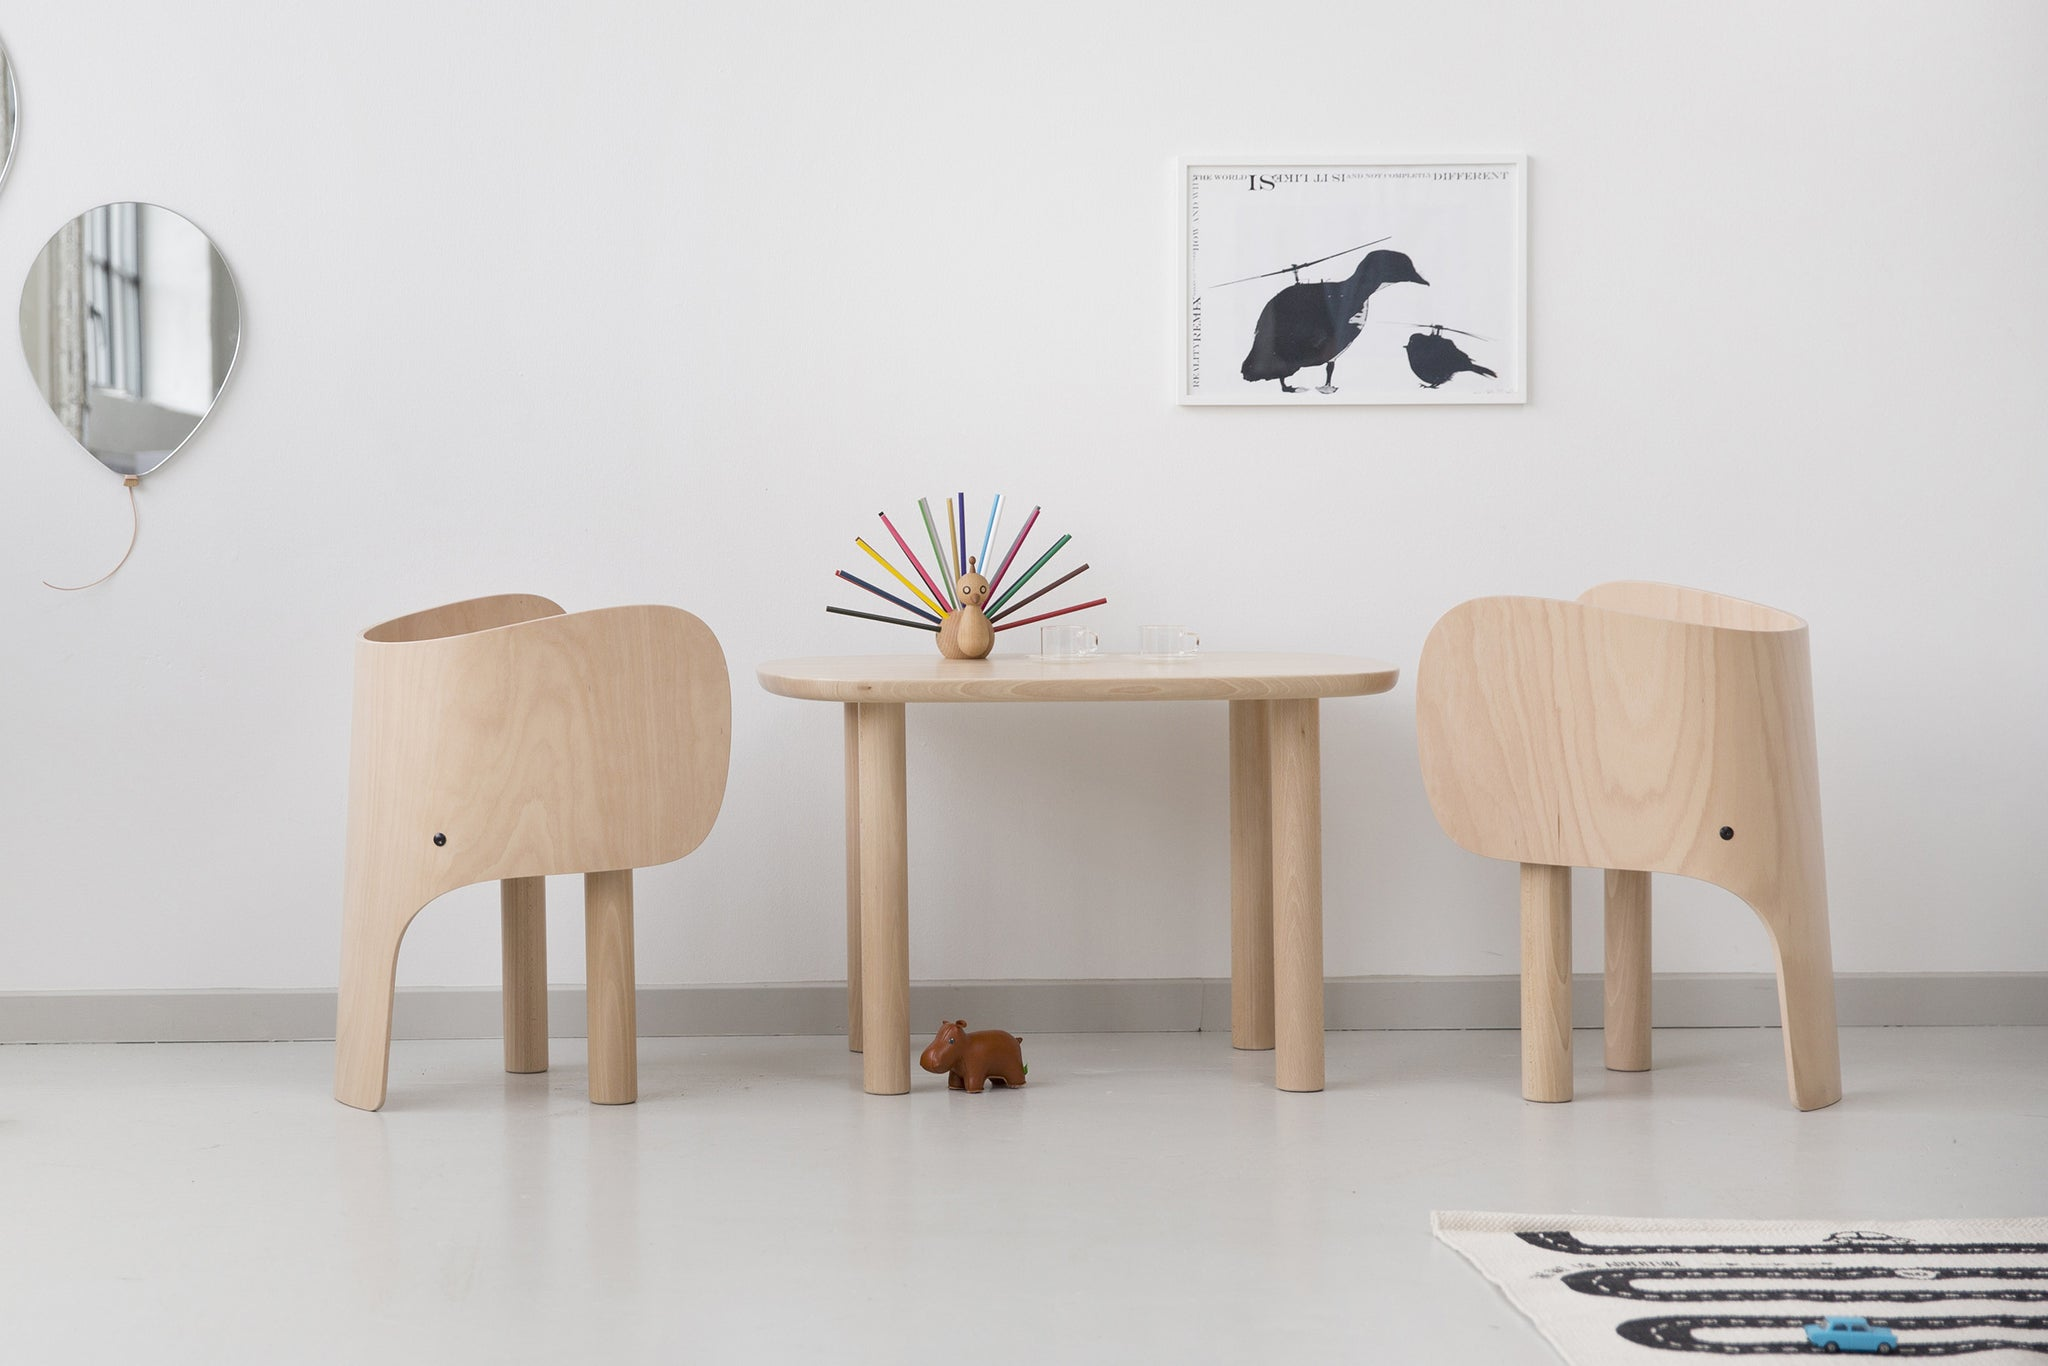 ELEMENTS OPTIMAL Elephant Chair from Someday Designs